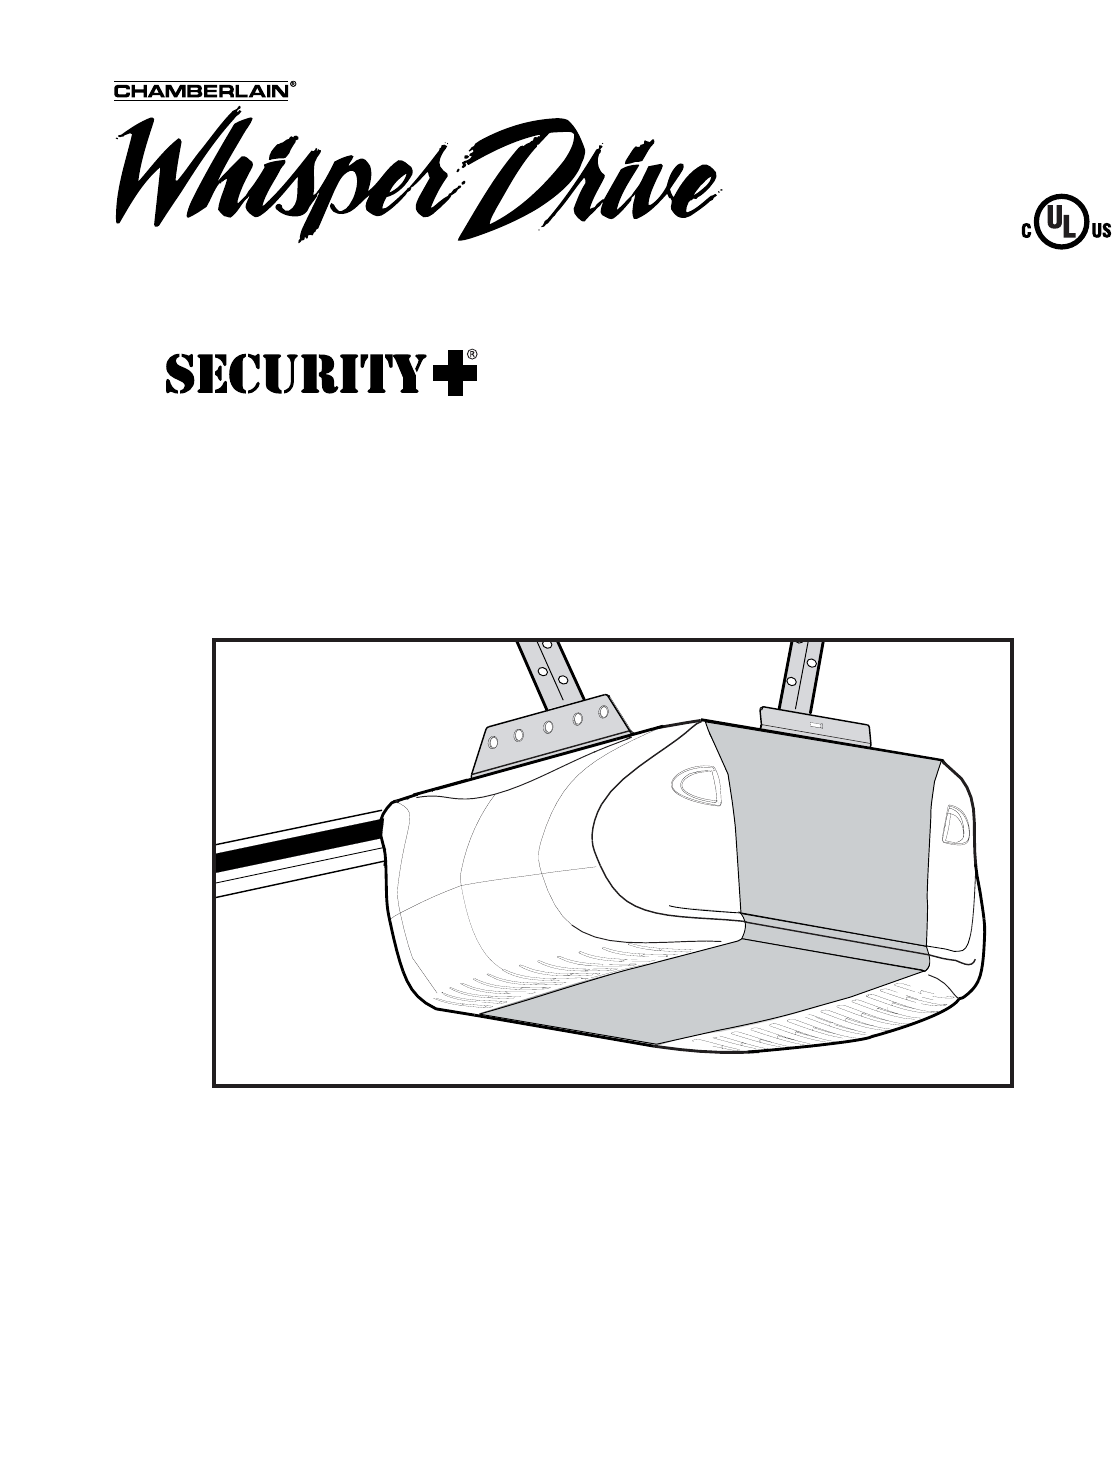 Chamberlain Garage Door Opener WD822KS 1/2 HP User Guide